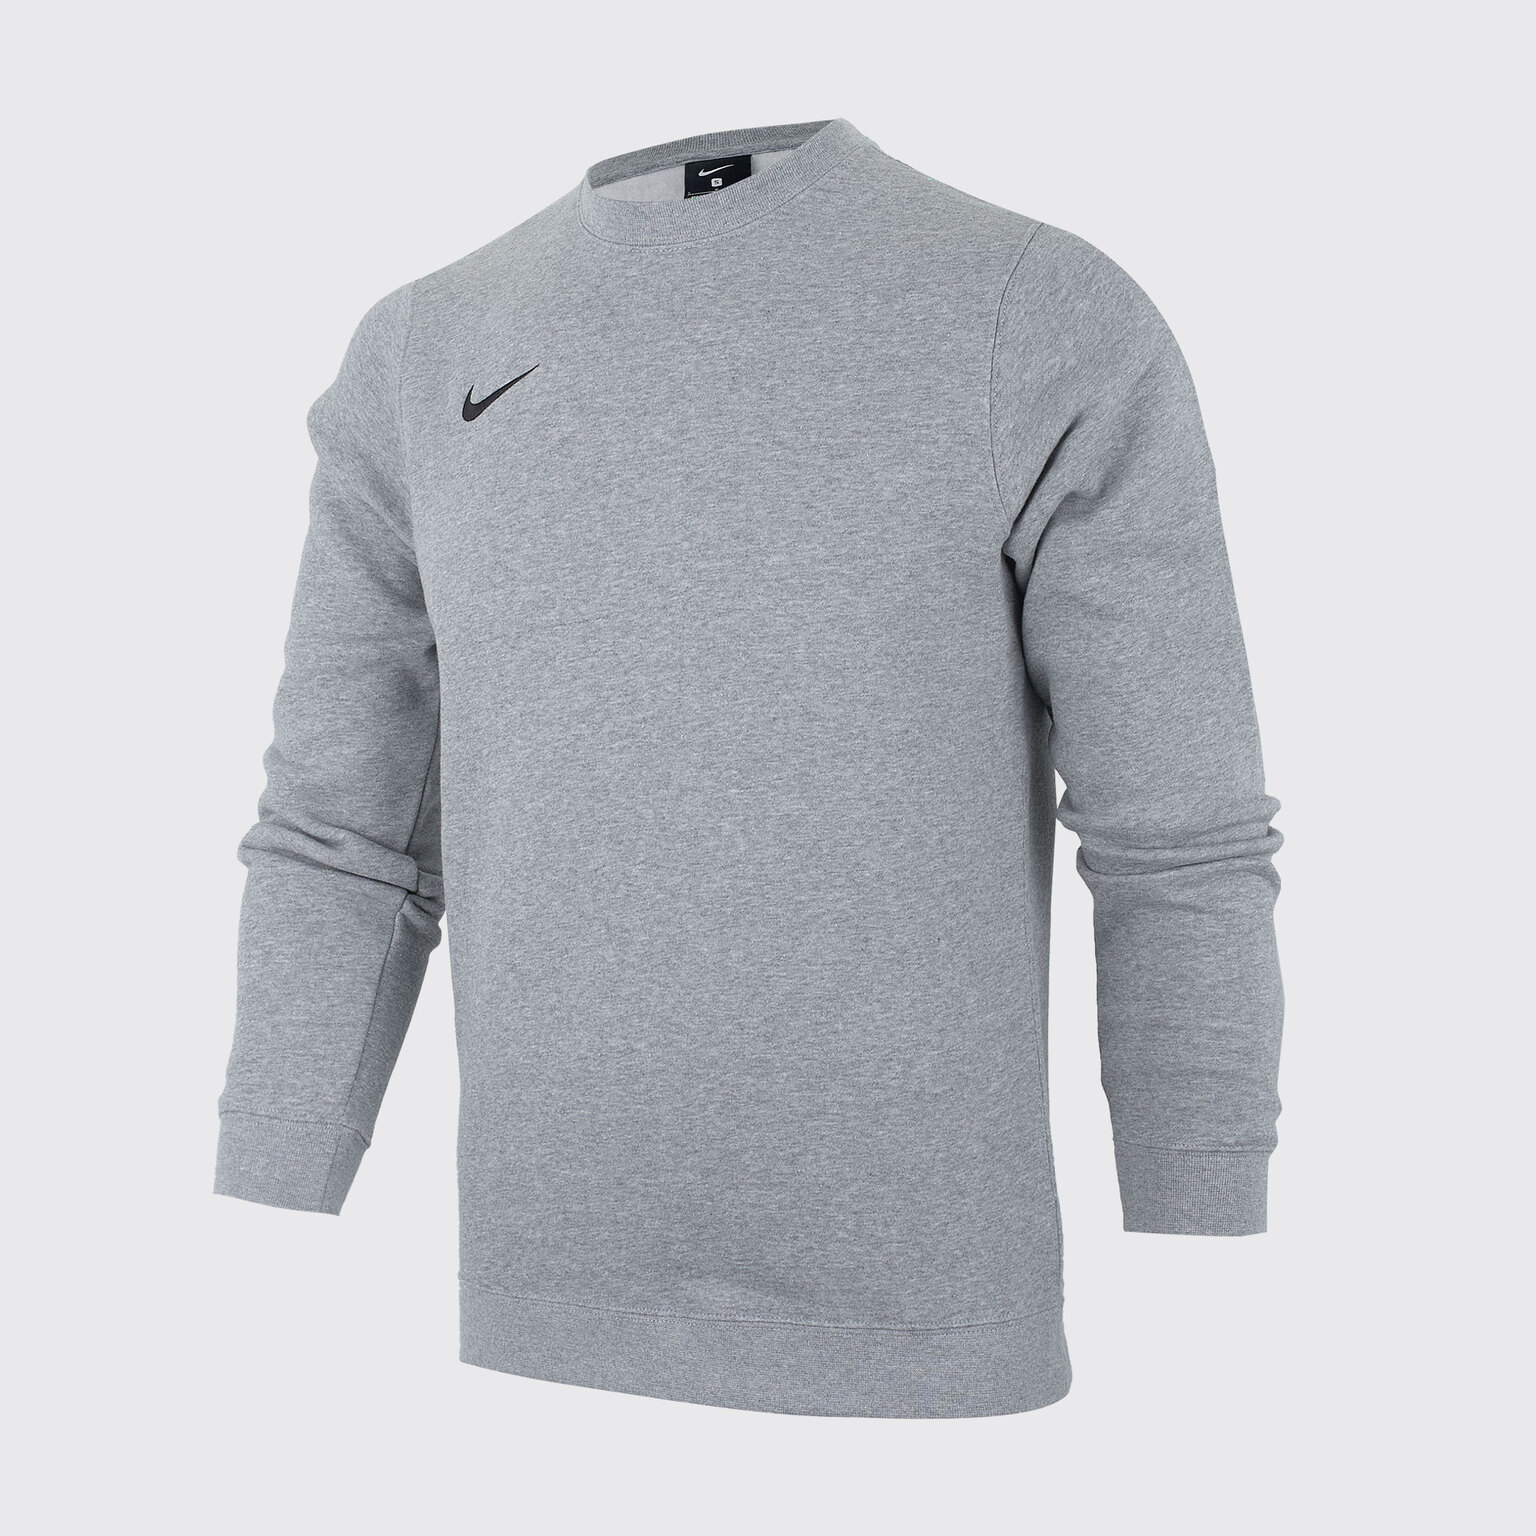 Свитшот Nike Crew Fleece Club19 AJ1466-063 nike sb icon crew fleece